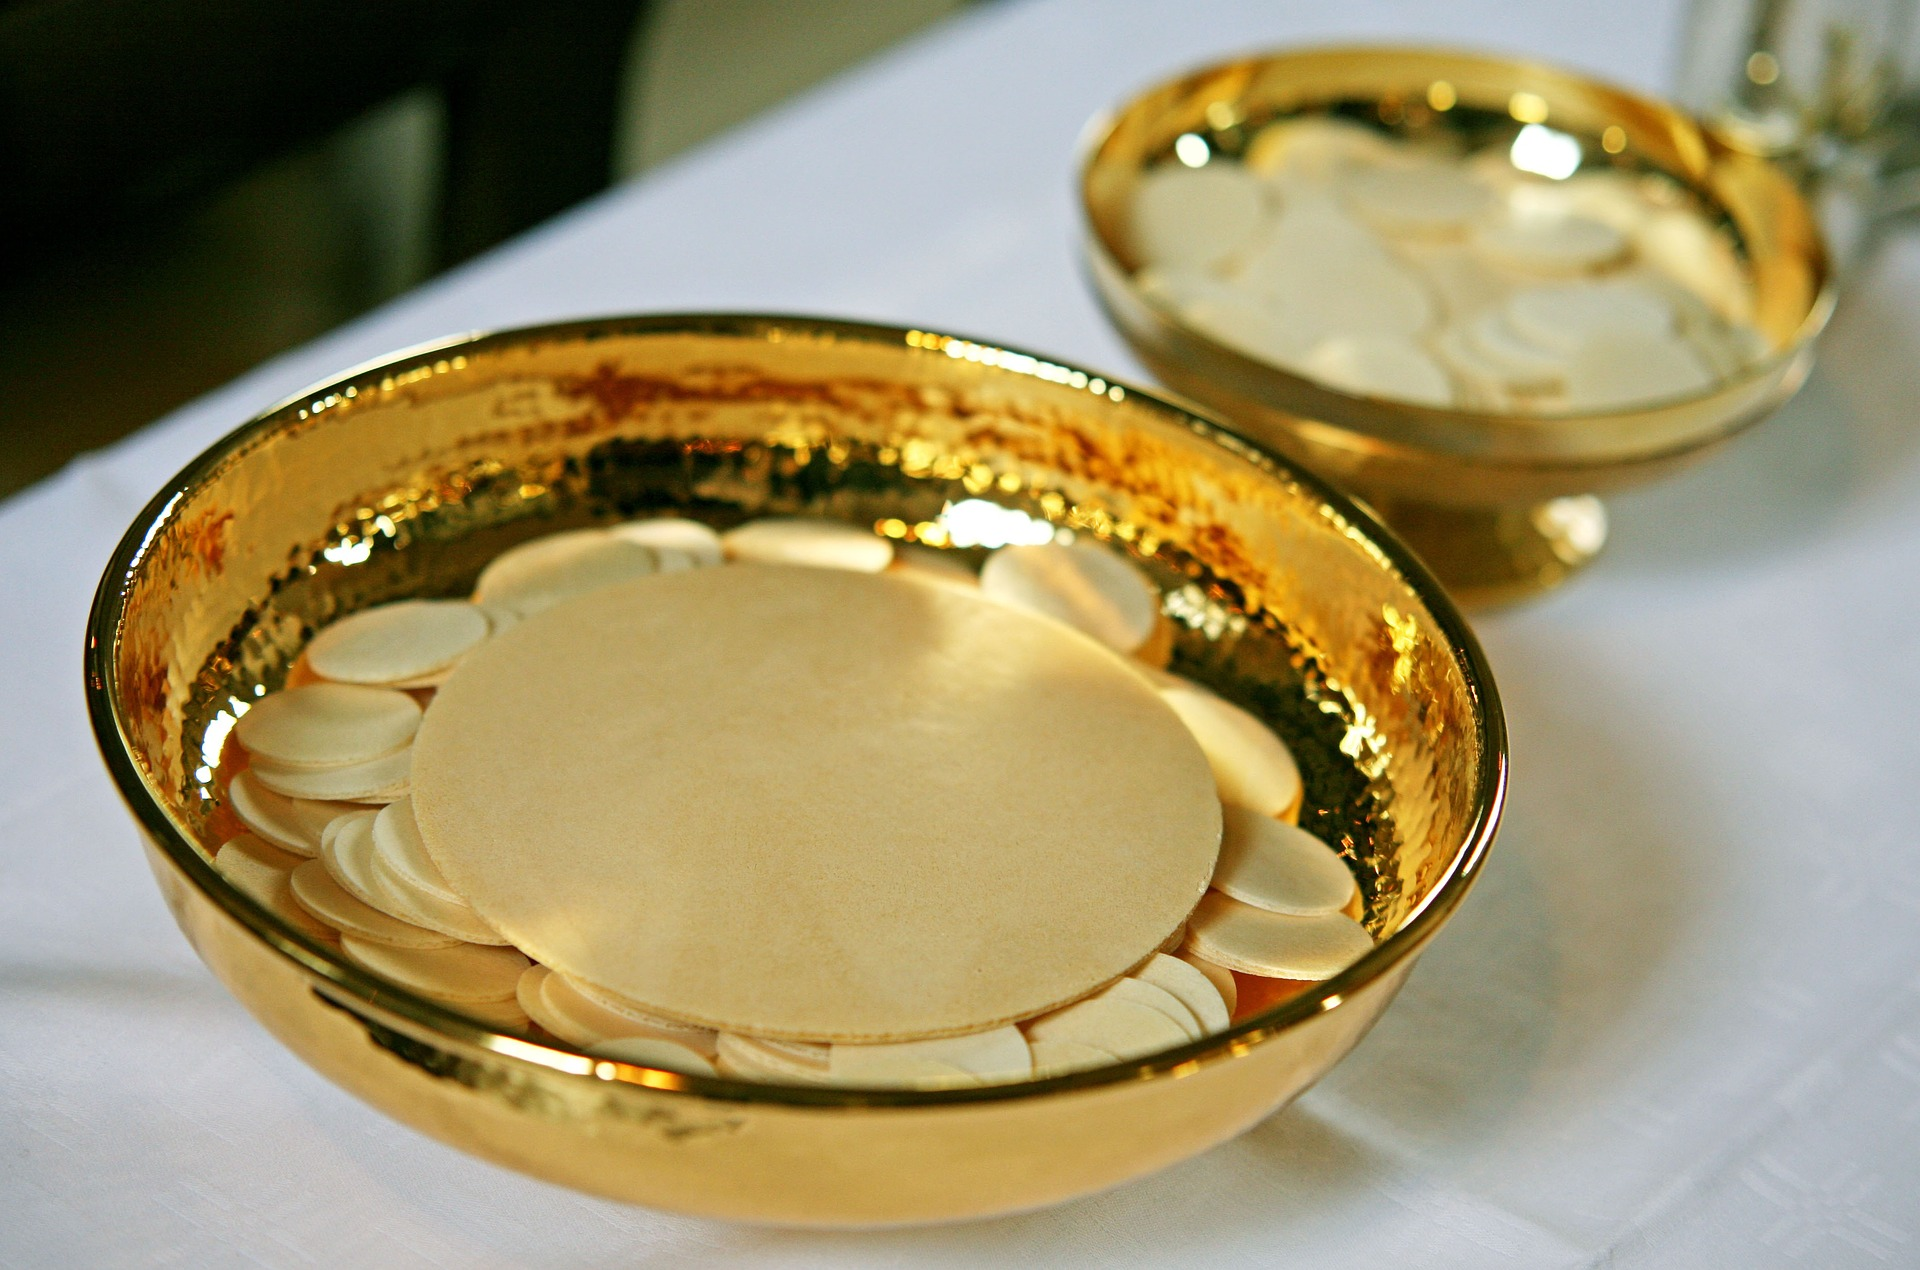 The Body of Christ for the Eucharist